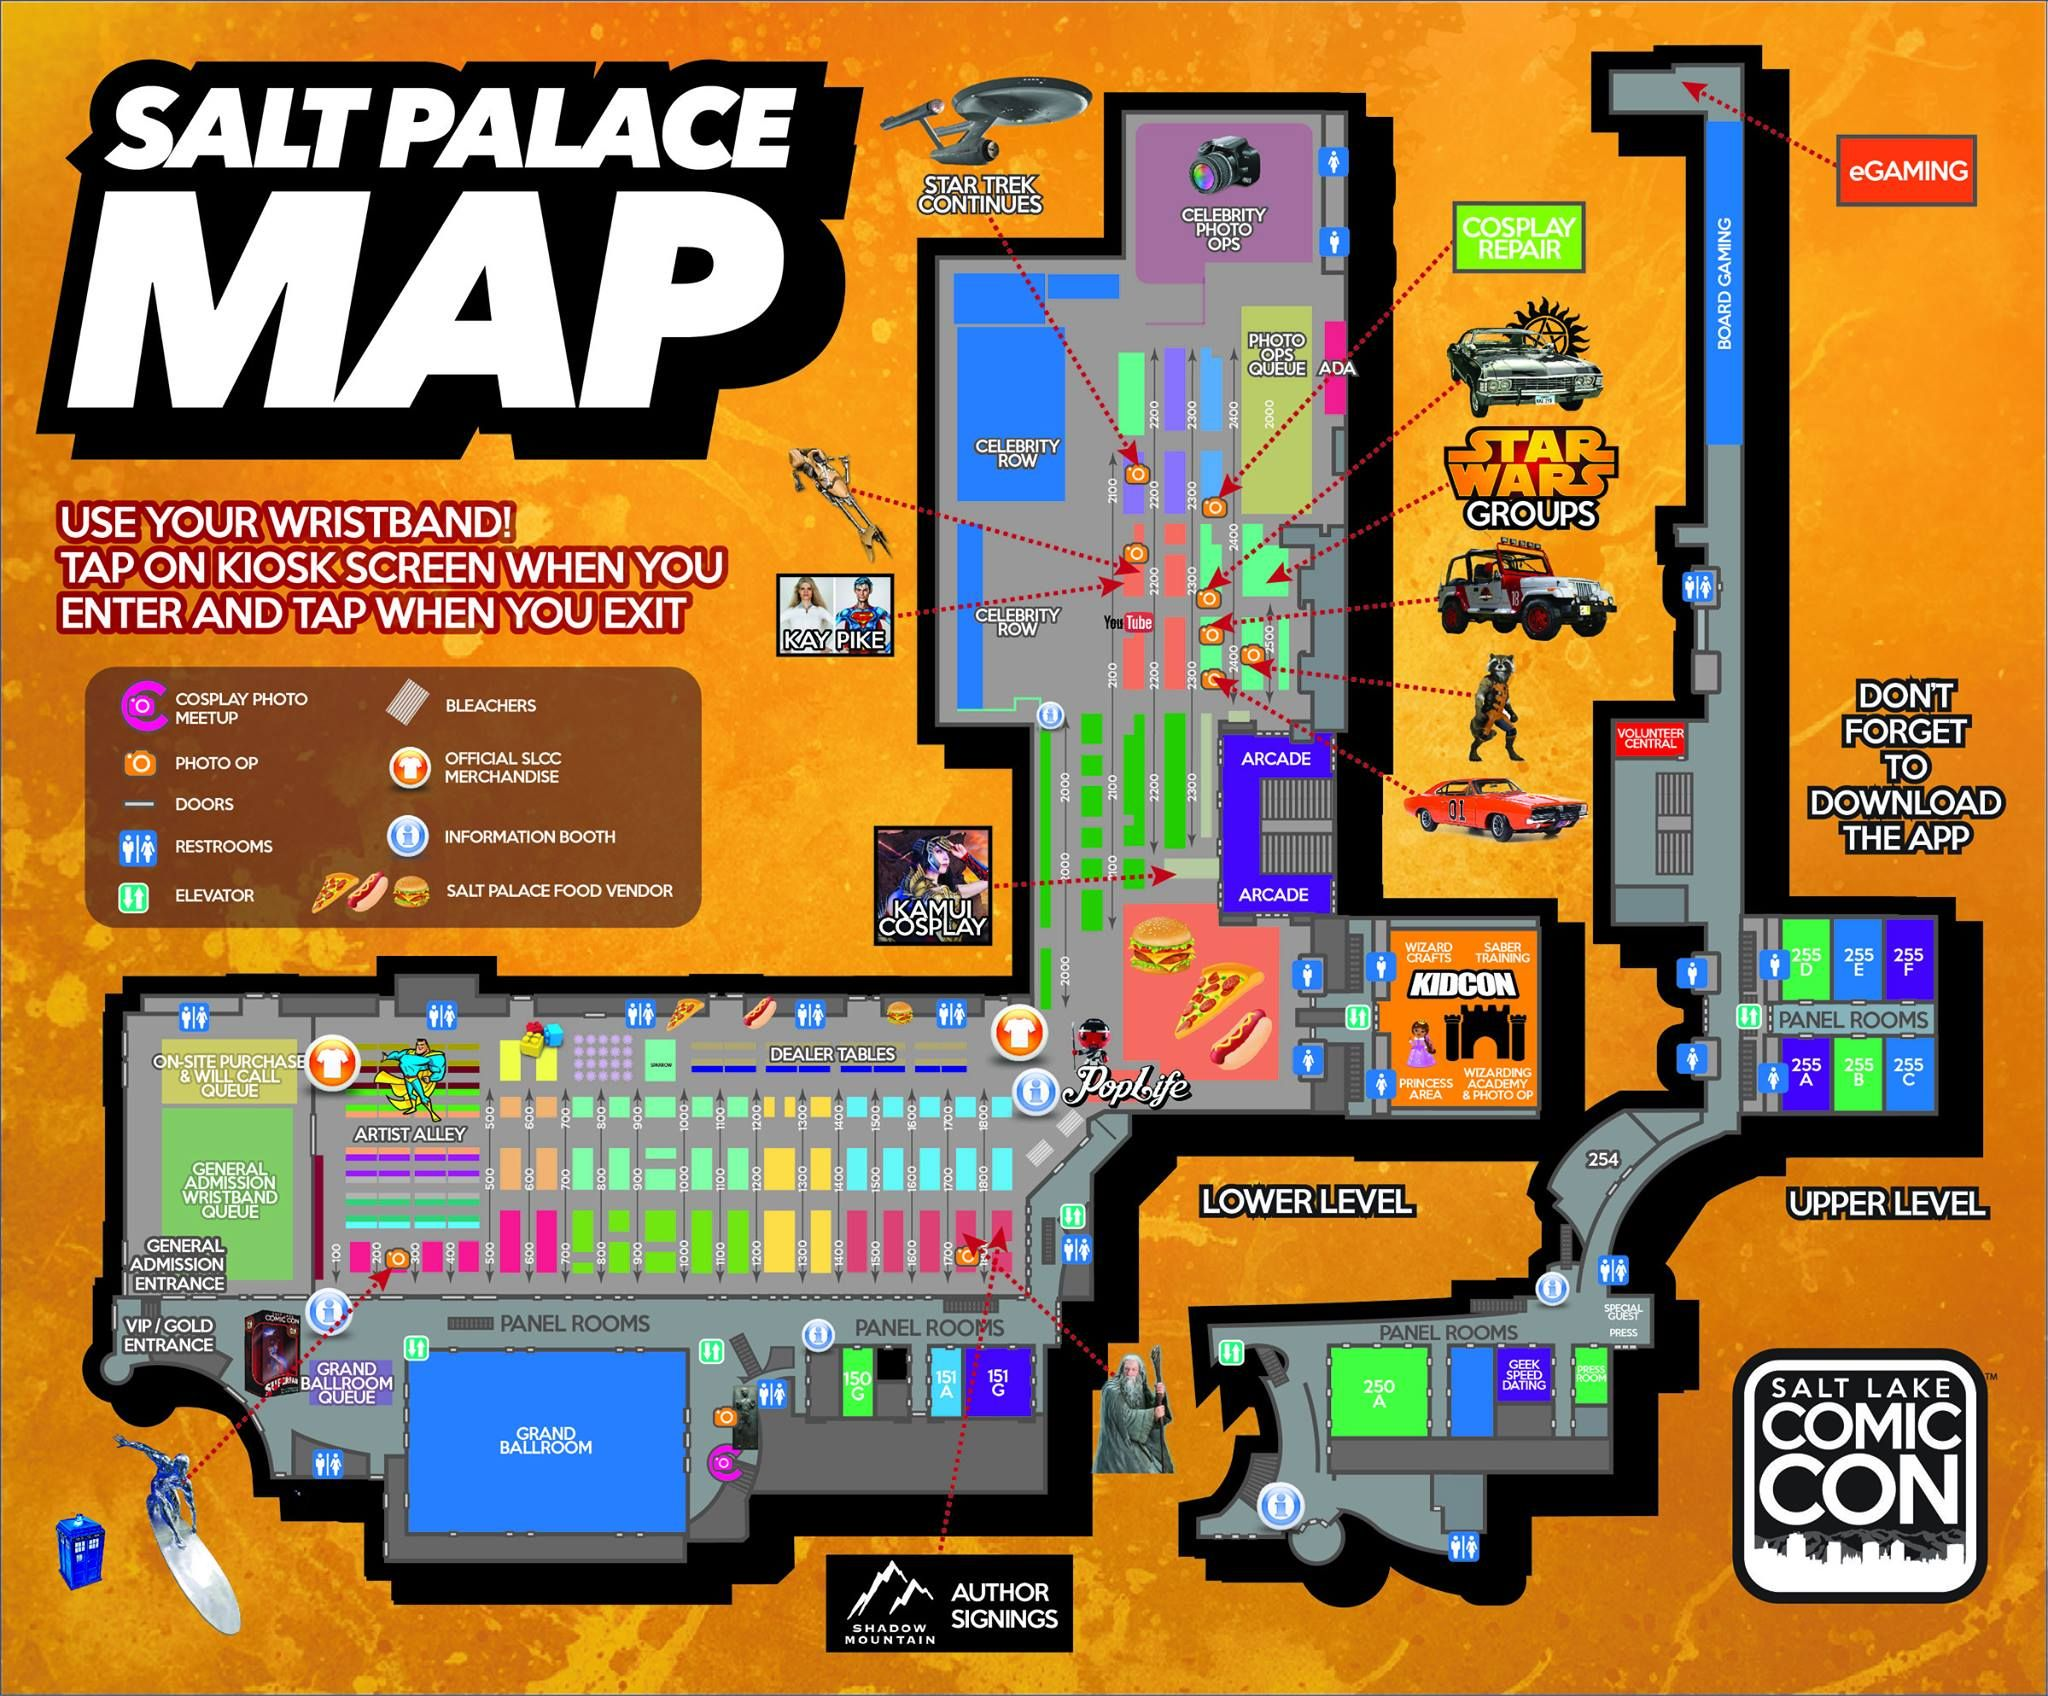 The official Salt Palace Map! Have questions about attending ... on hartford convention center map, ft lauderdale convention center map, fresno convention center map, amsterdam convention center map, durham convention center map, chattanooga convention center map, lynnwood convention center map, reno convention center map, mesquite convention center map, rochester convention center map, florida convention center map, hampton roads convention center map, sarasota bradenton convention center map, palm springs convention center map, lansing convention center map, arlington convention center map, dallas fort worth convention center map, hot springs convention center map, amarillo convention center map, louisville convention center map,